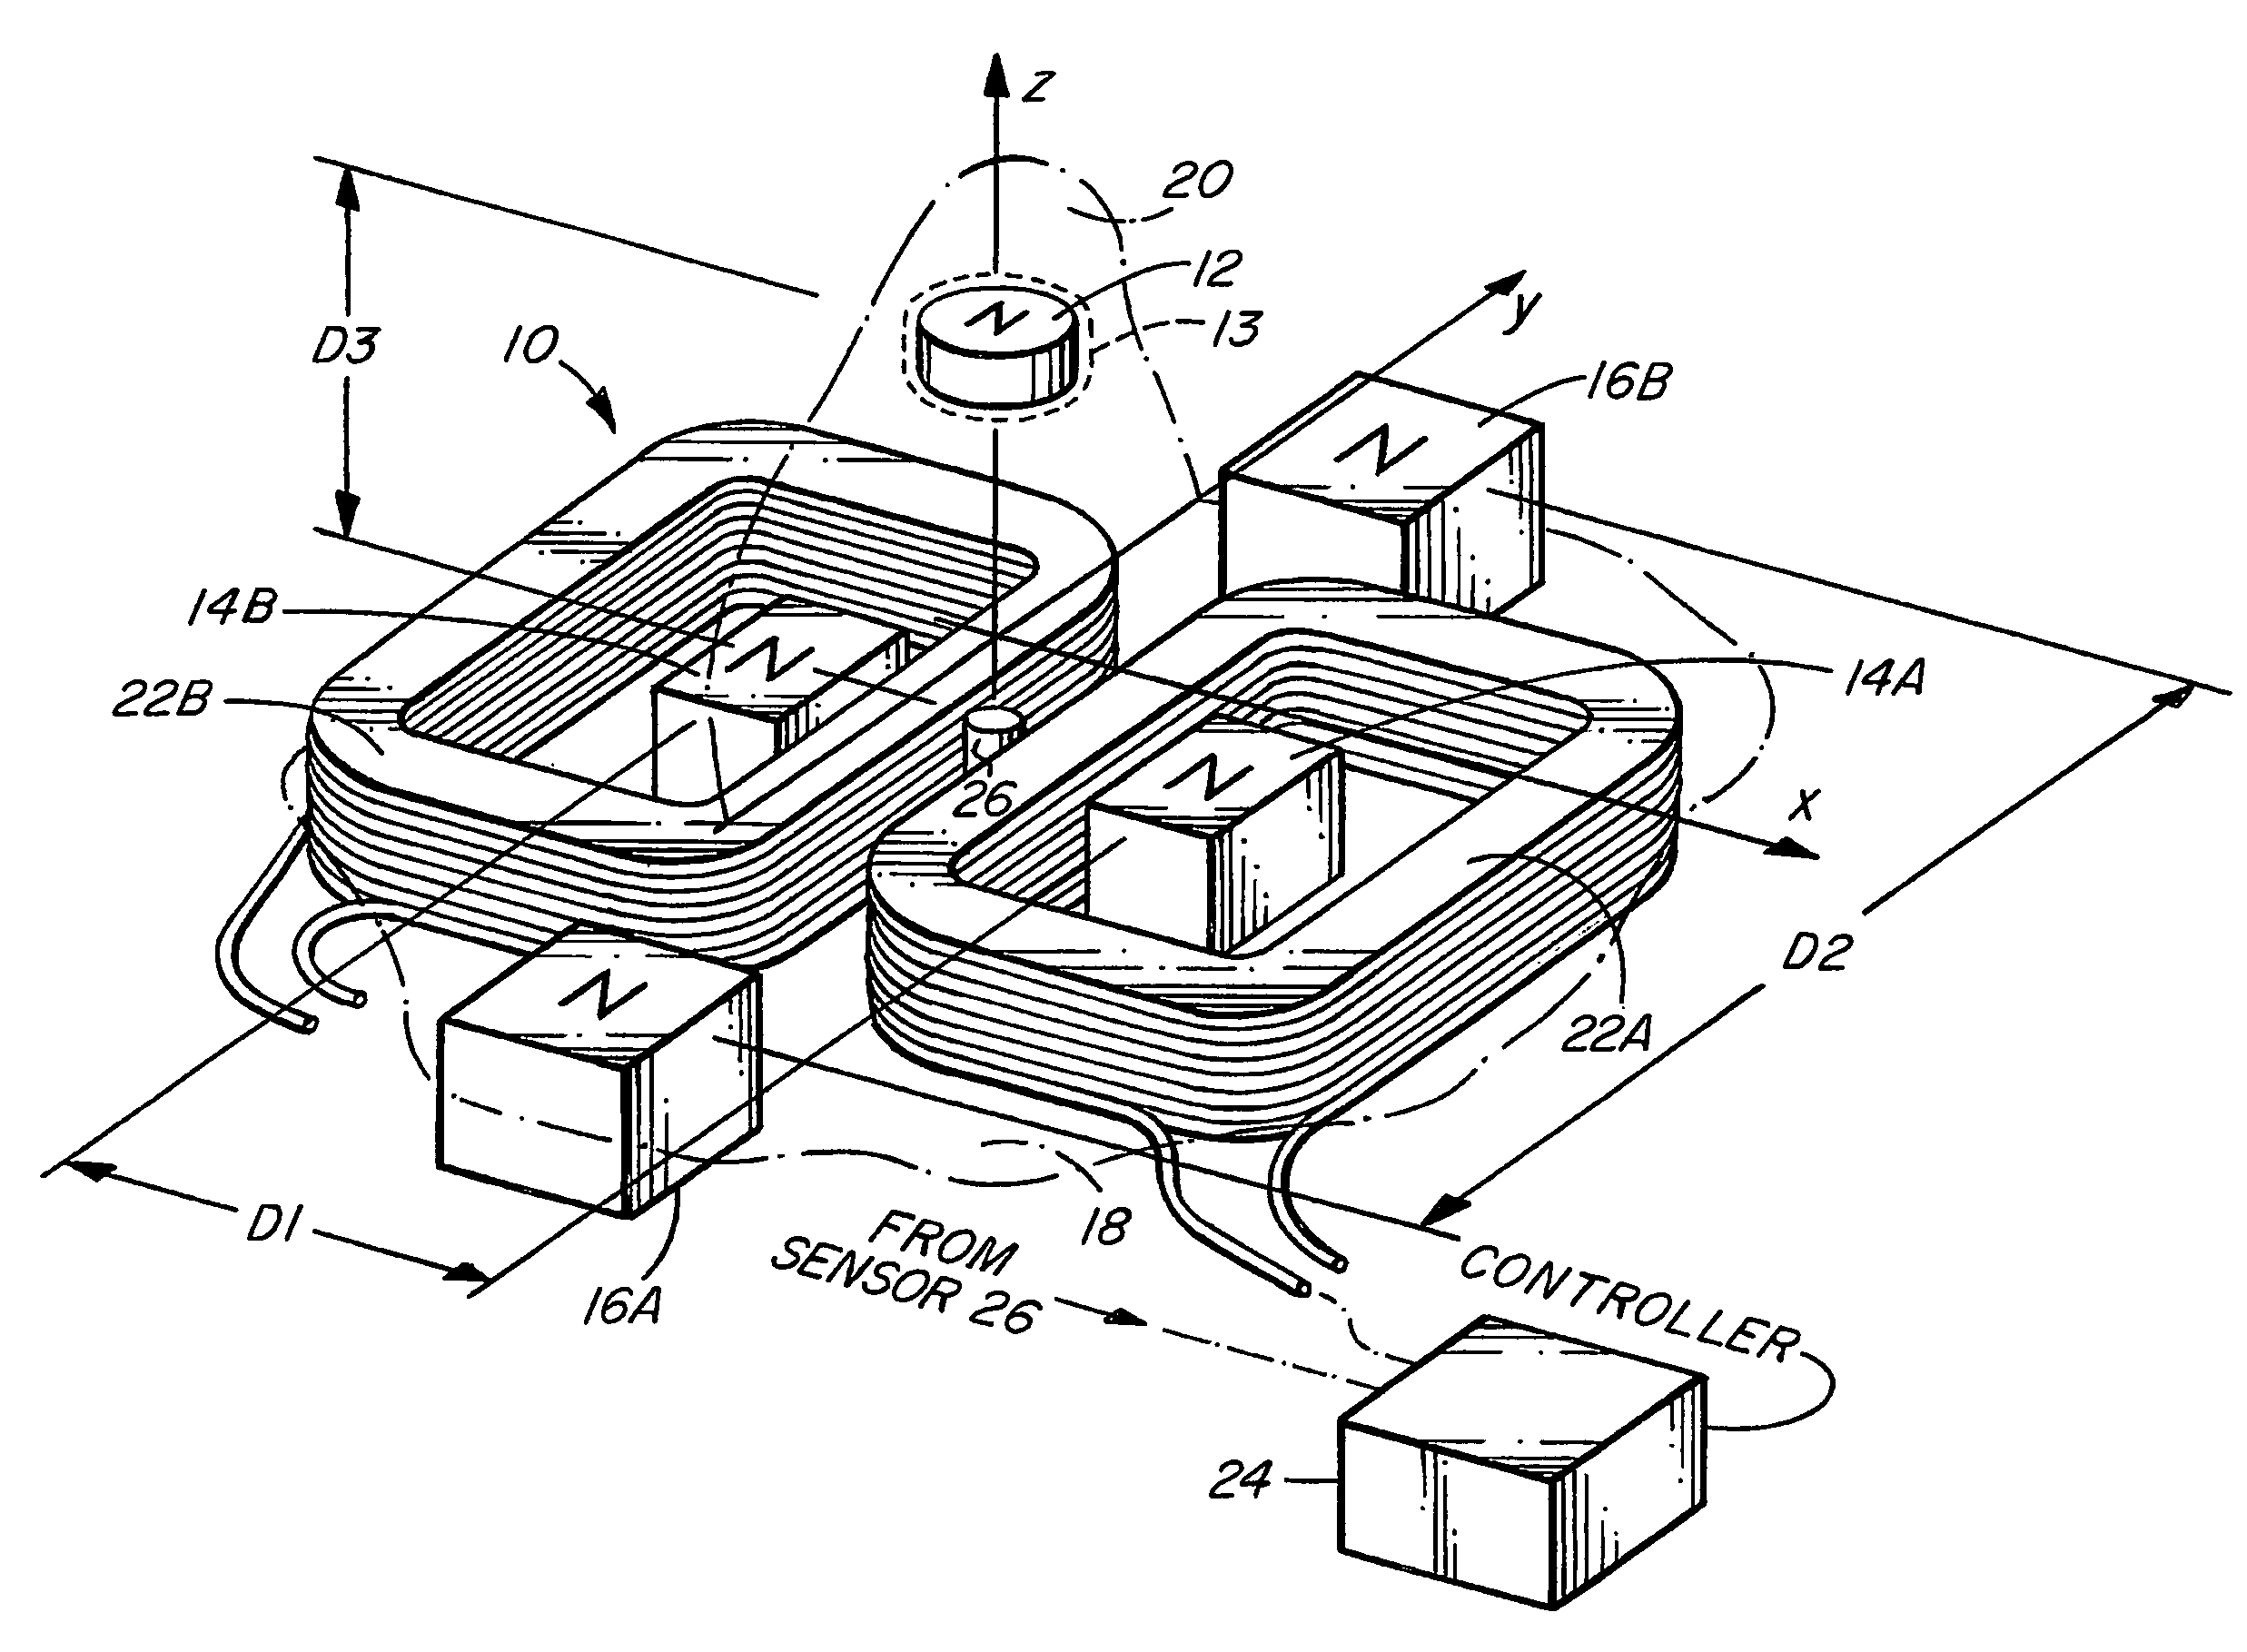 2474x1819 Patent Us20140265690 Magnetic Levitation Of A Stationary